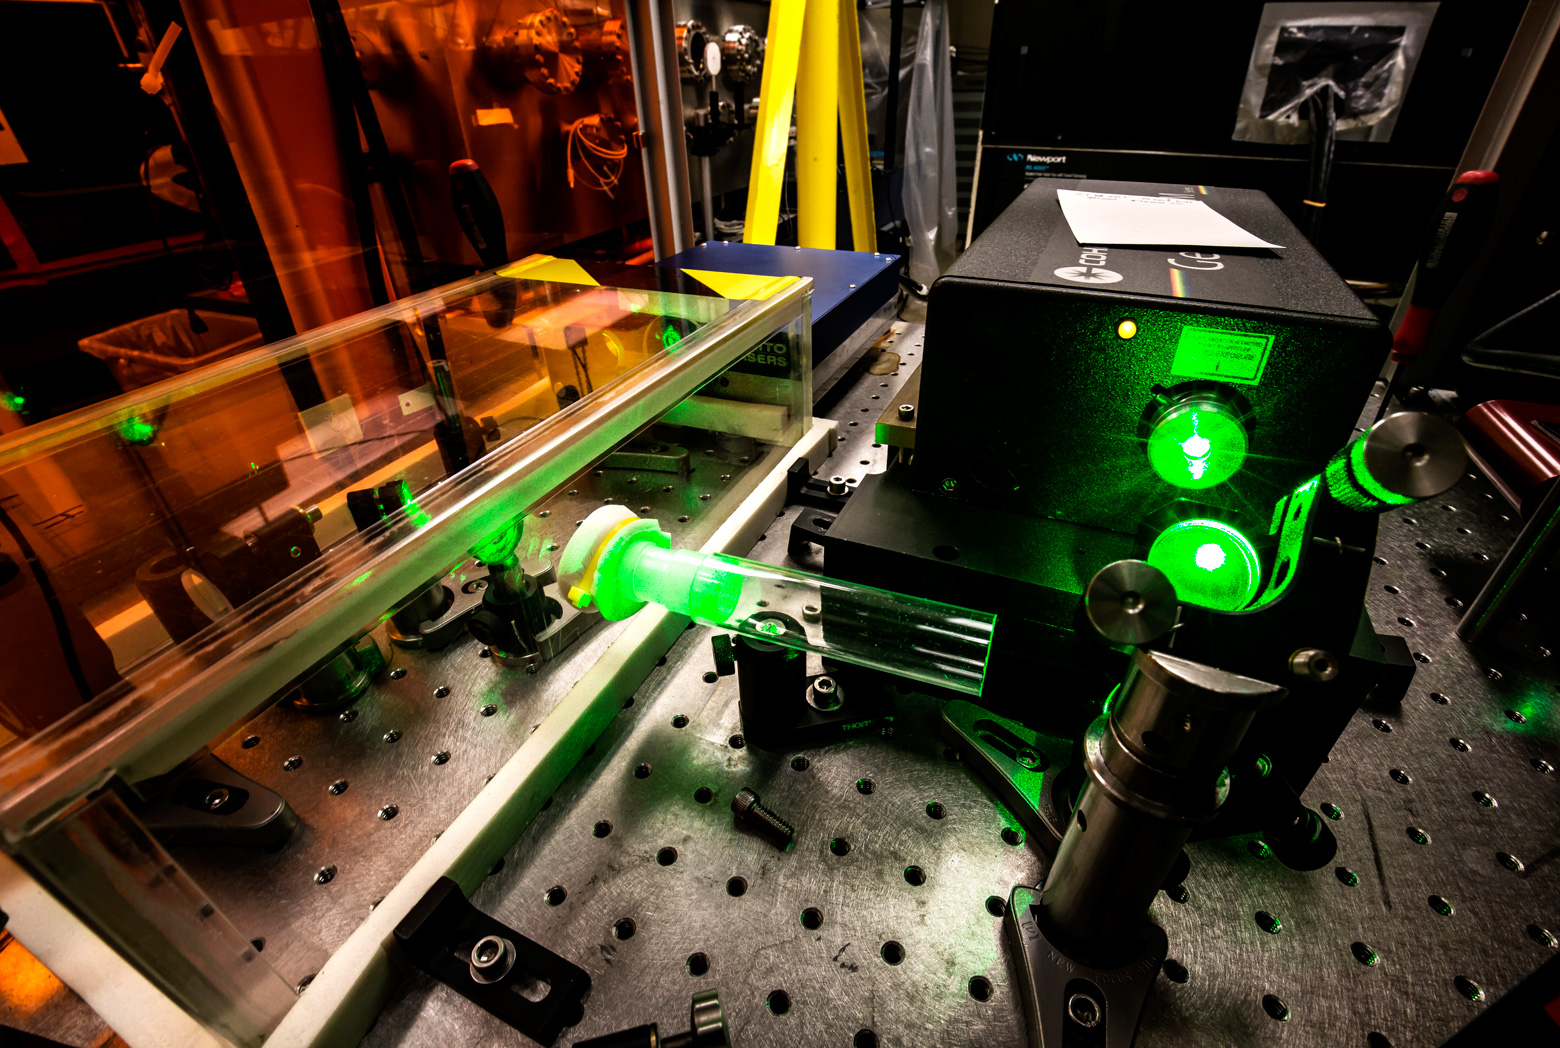 The HERCULES laser in the lab